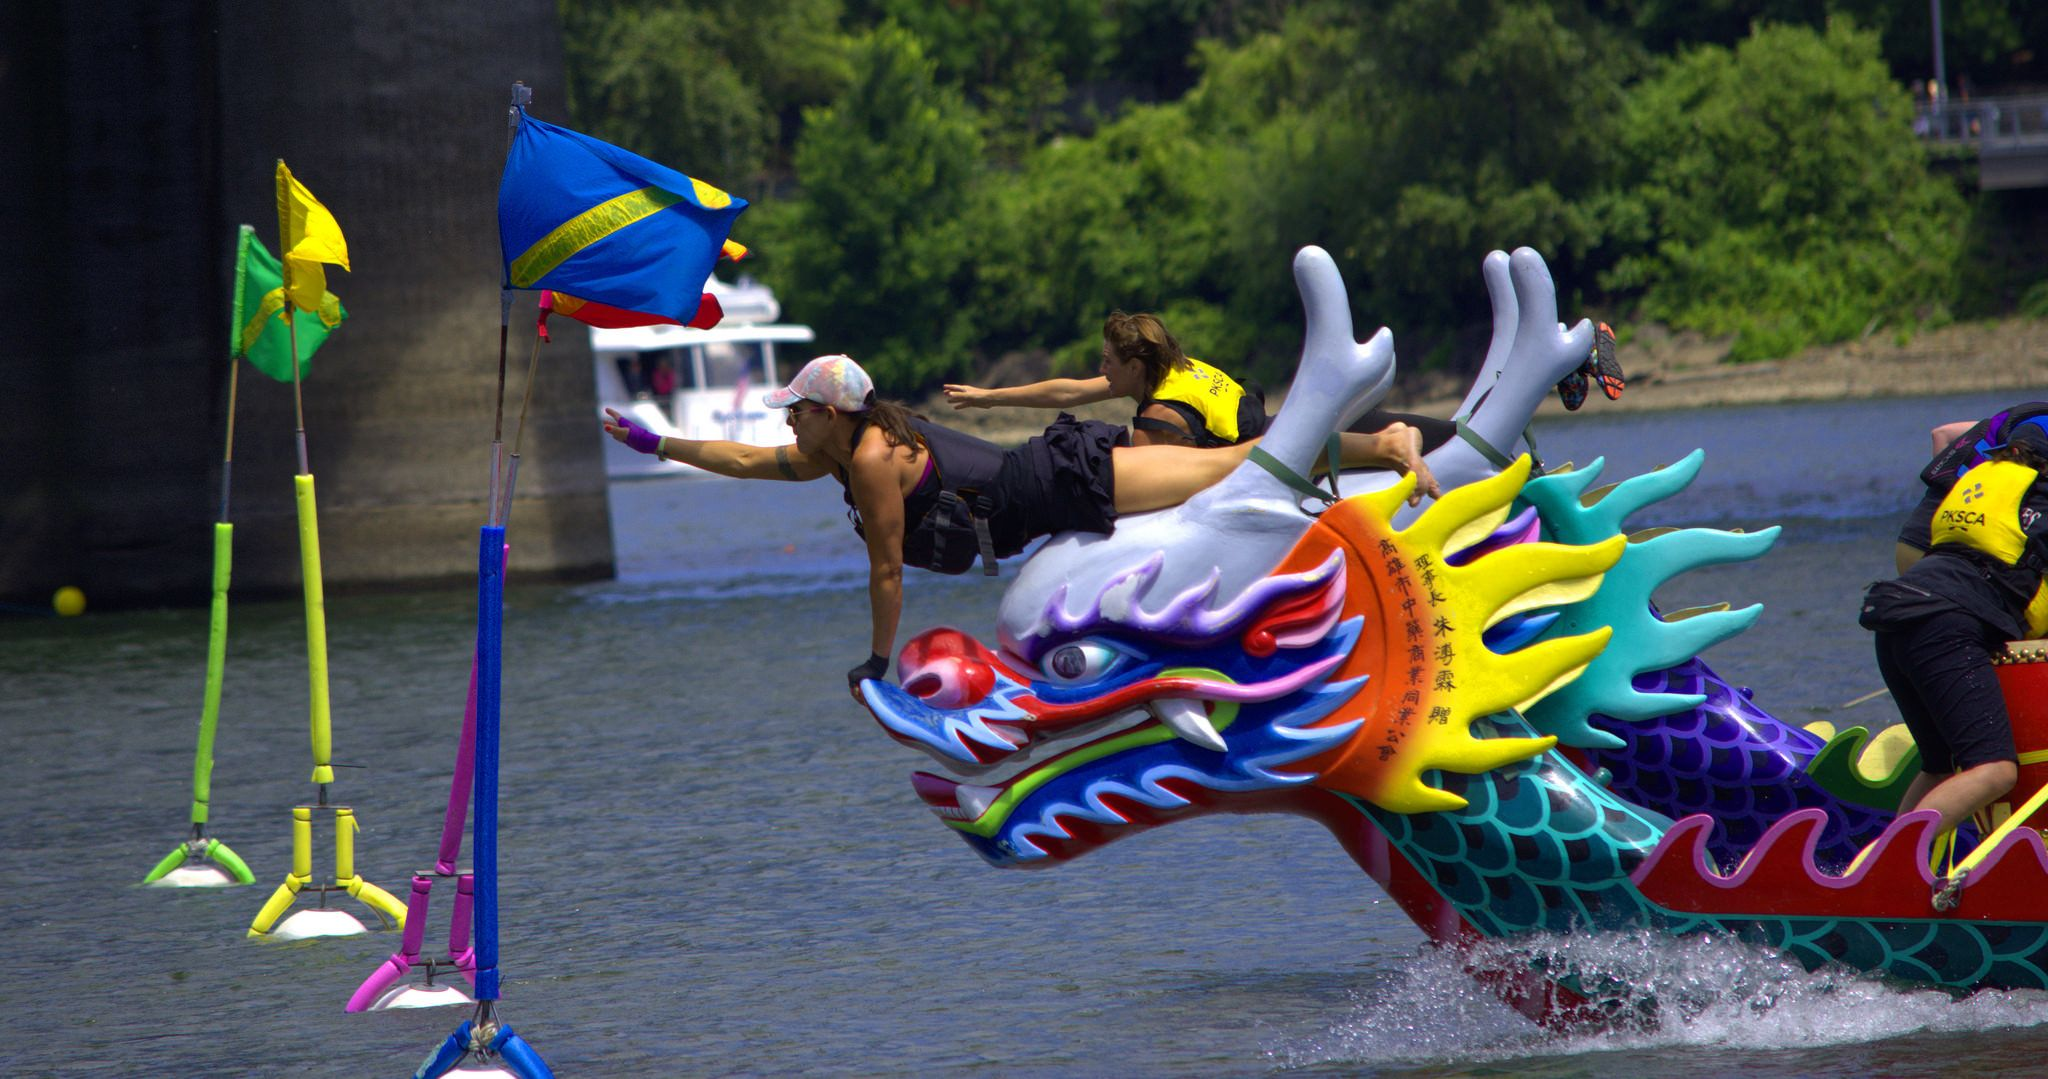 https://flic.kr/p/HcrTBr | Close Race | Of the many heats that day... This was one of the closer finishes.   Dragon Boat paddle races, Portland, Oregon 2016